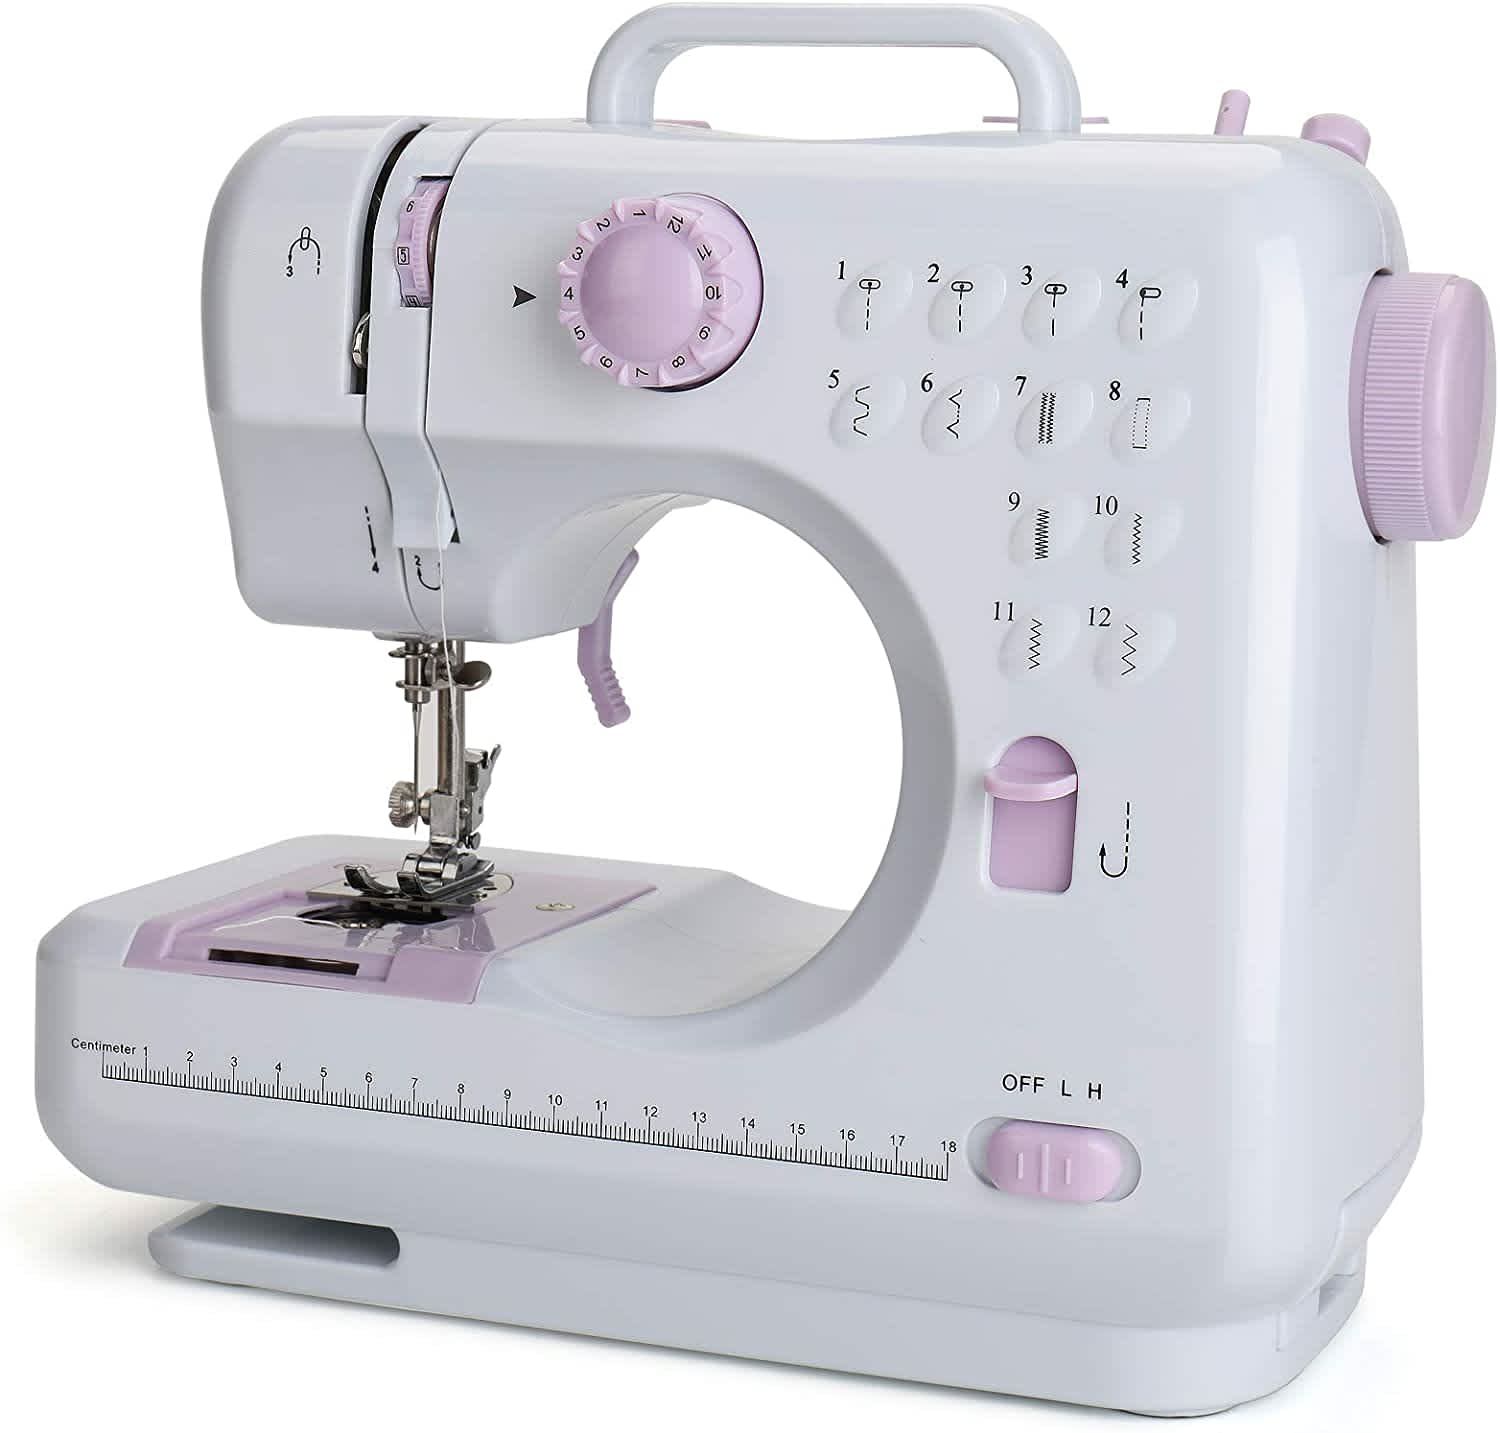 Aonesy Portable Mini Sewing Machine